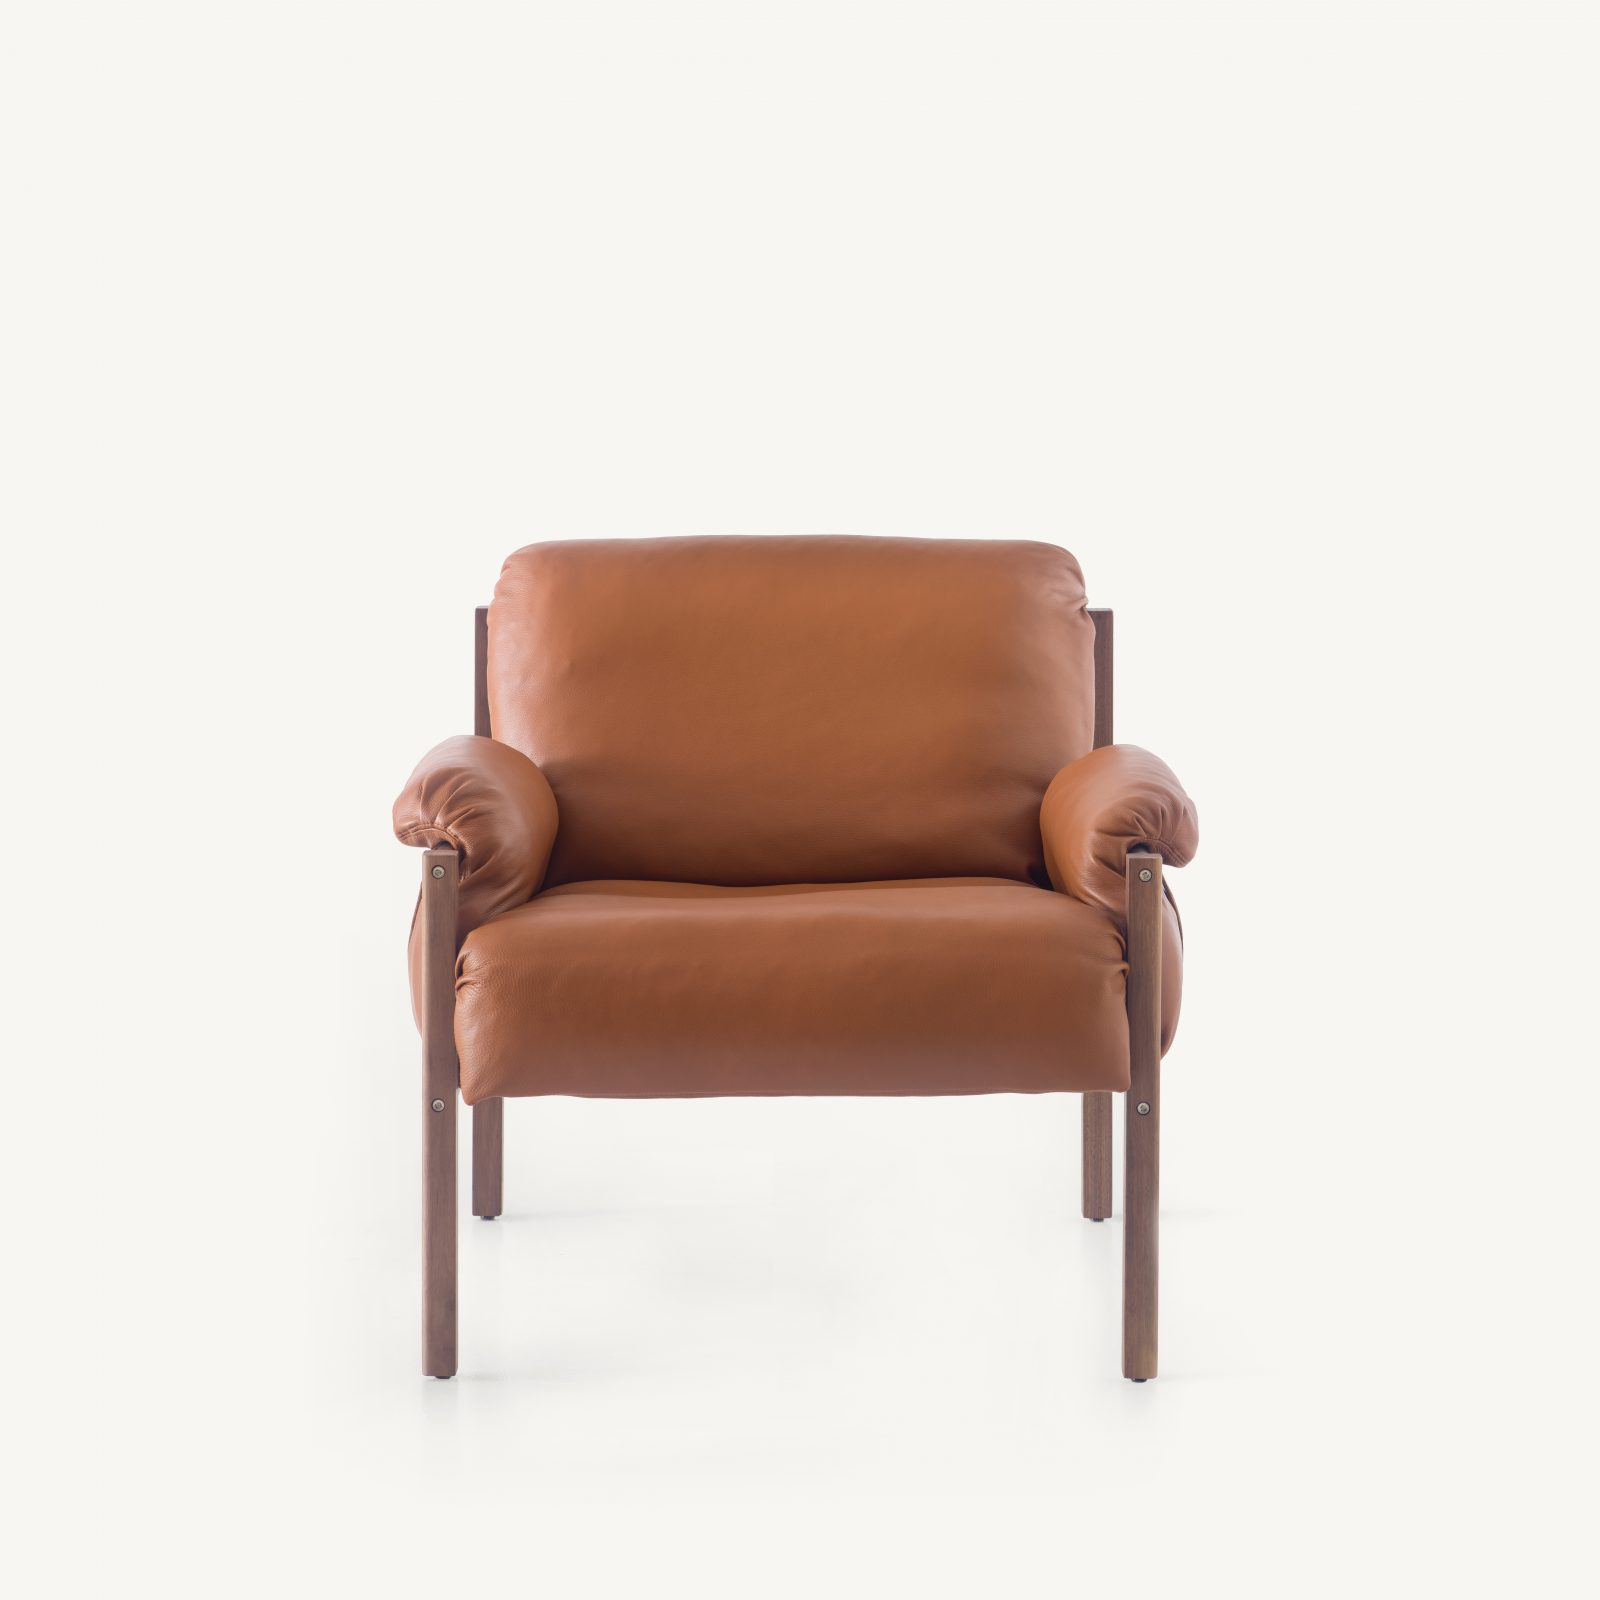 BassamFellows CB-570 Sling Club Chair in solid Walnut and plated steel, front, credit MARCO FAVALLI